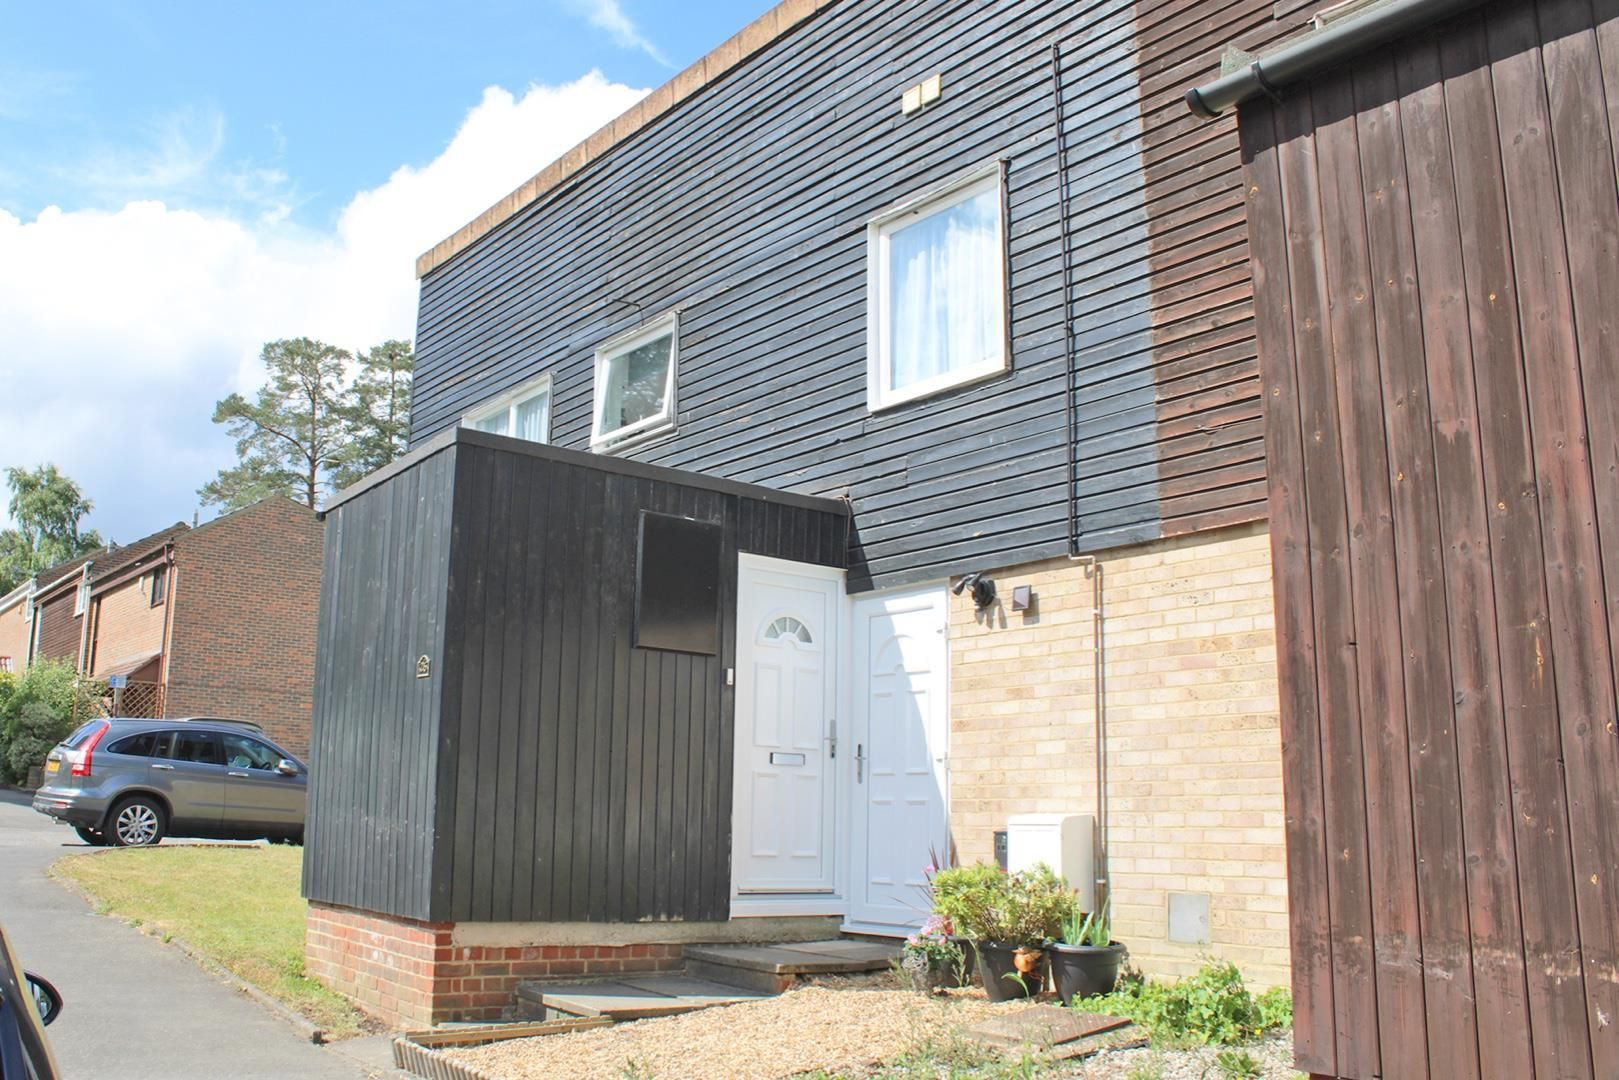 1 bed duplex for sale, RG12